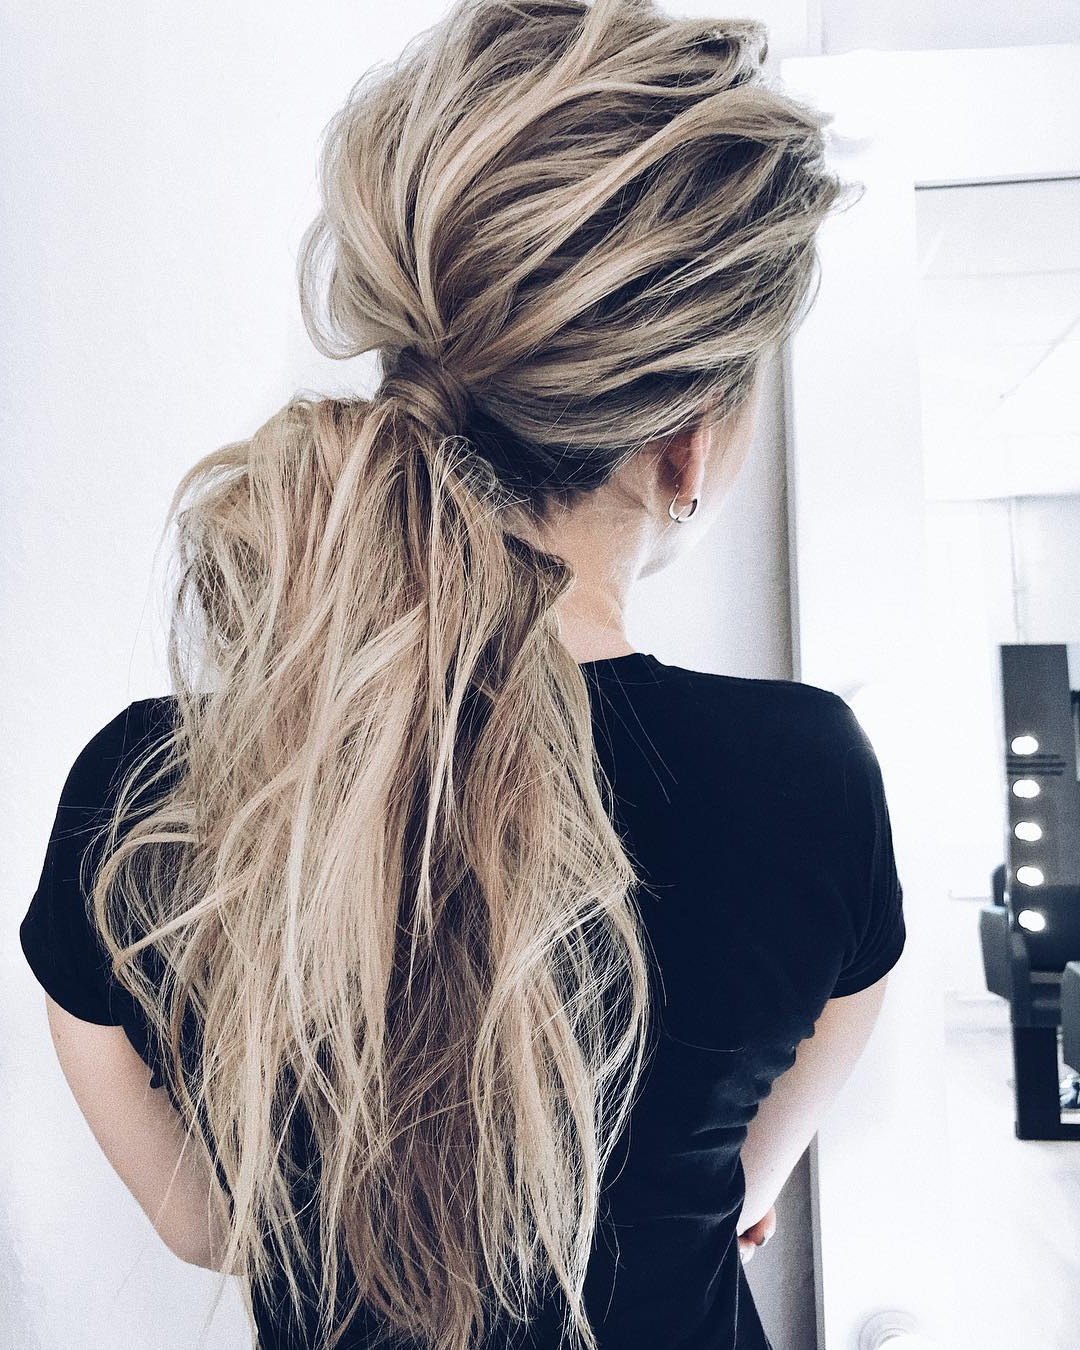 Newest Teased Prom Updos With Cute Headband Inside 10 Creative Ponytail Hairstyles For Long Hair, Summer Hairstyle (View 13 of 20)